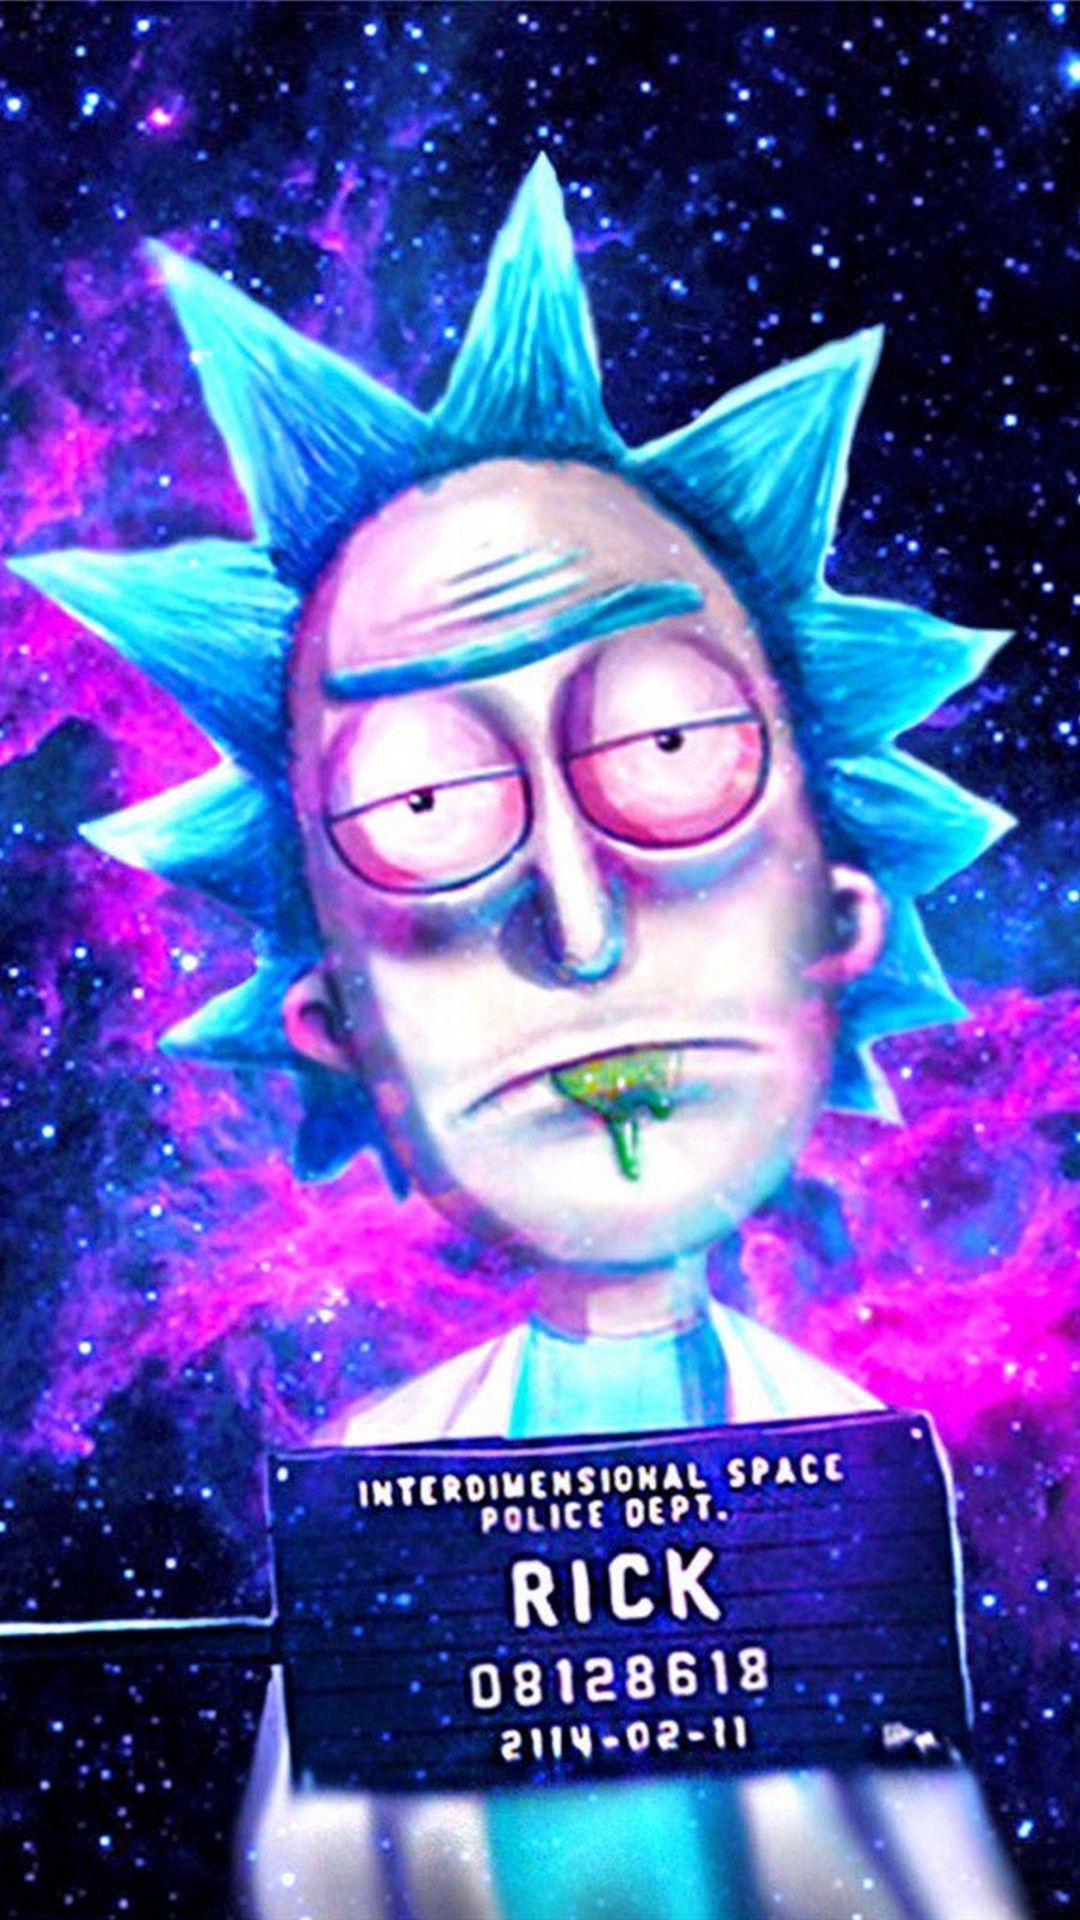 Acid Iphone Wallpaper Hd Rick And Morty Cartoon Network Iphone Wallpaper 2018